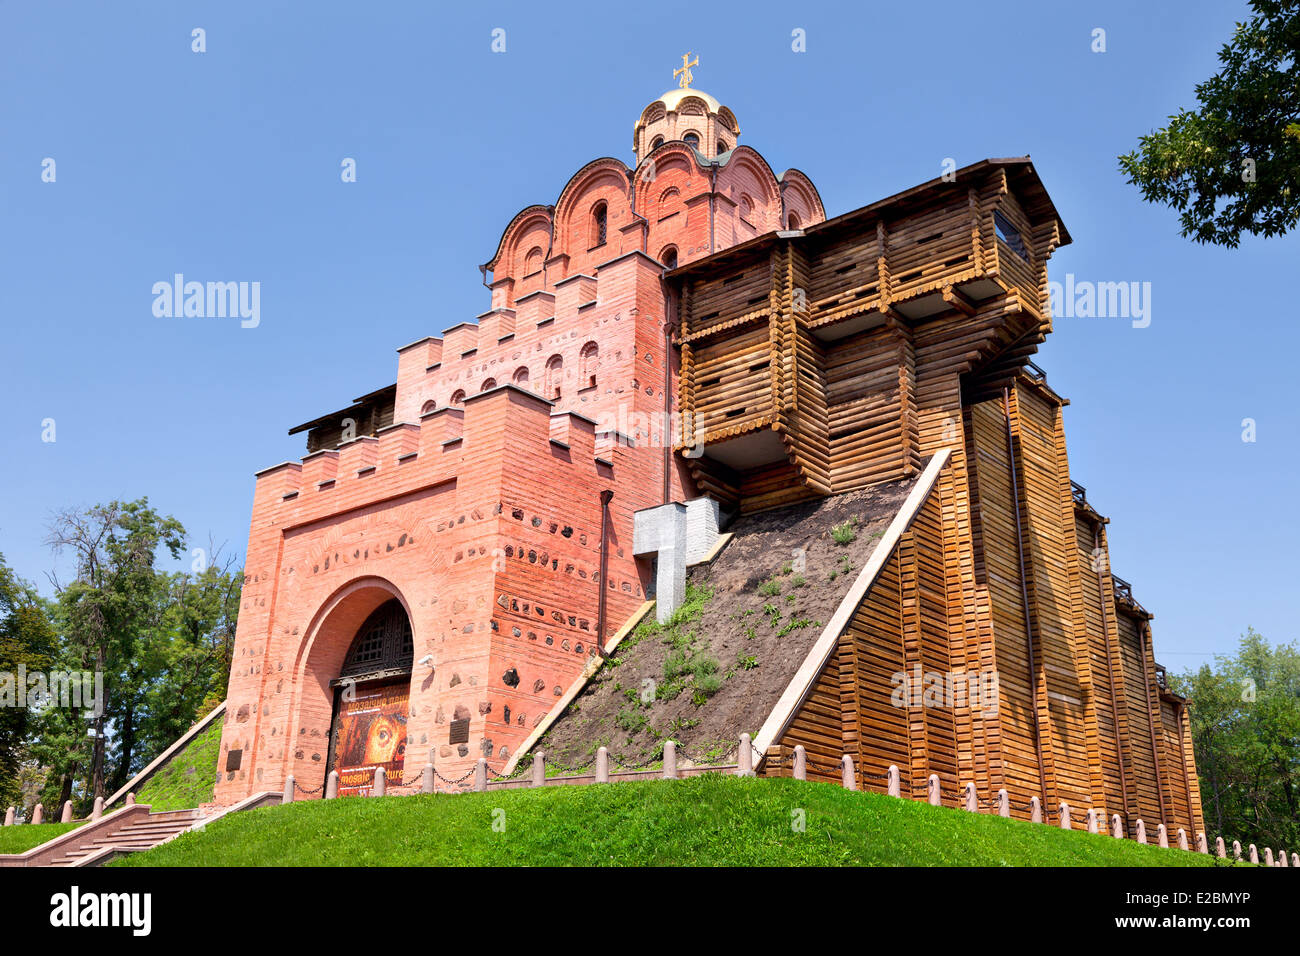 View of the Golden gate in Kiev, Ukraine - Stock Image